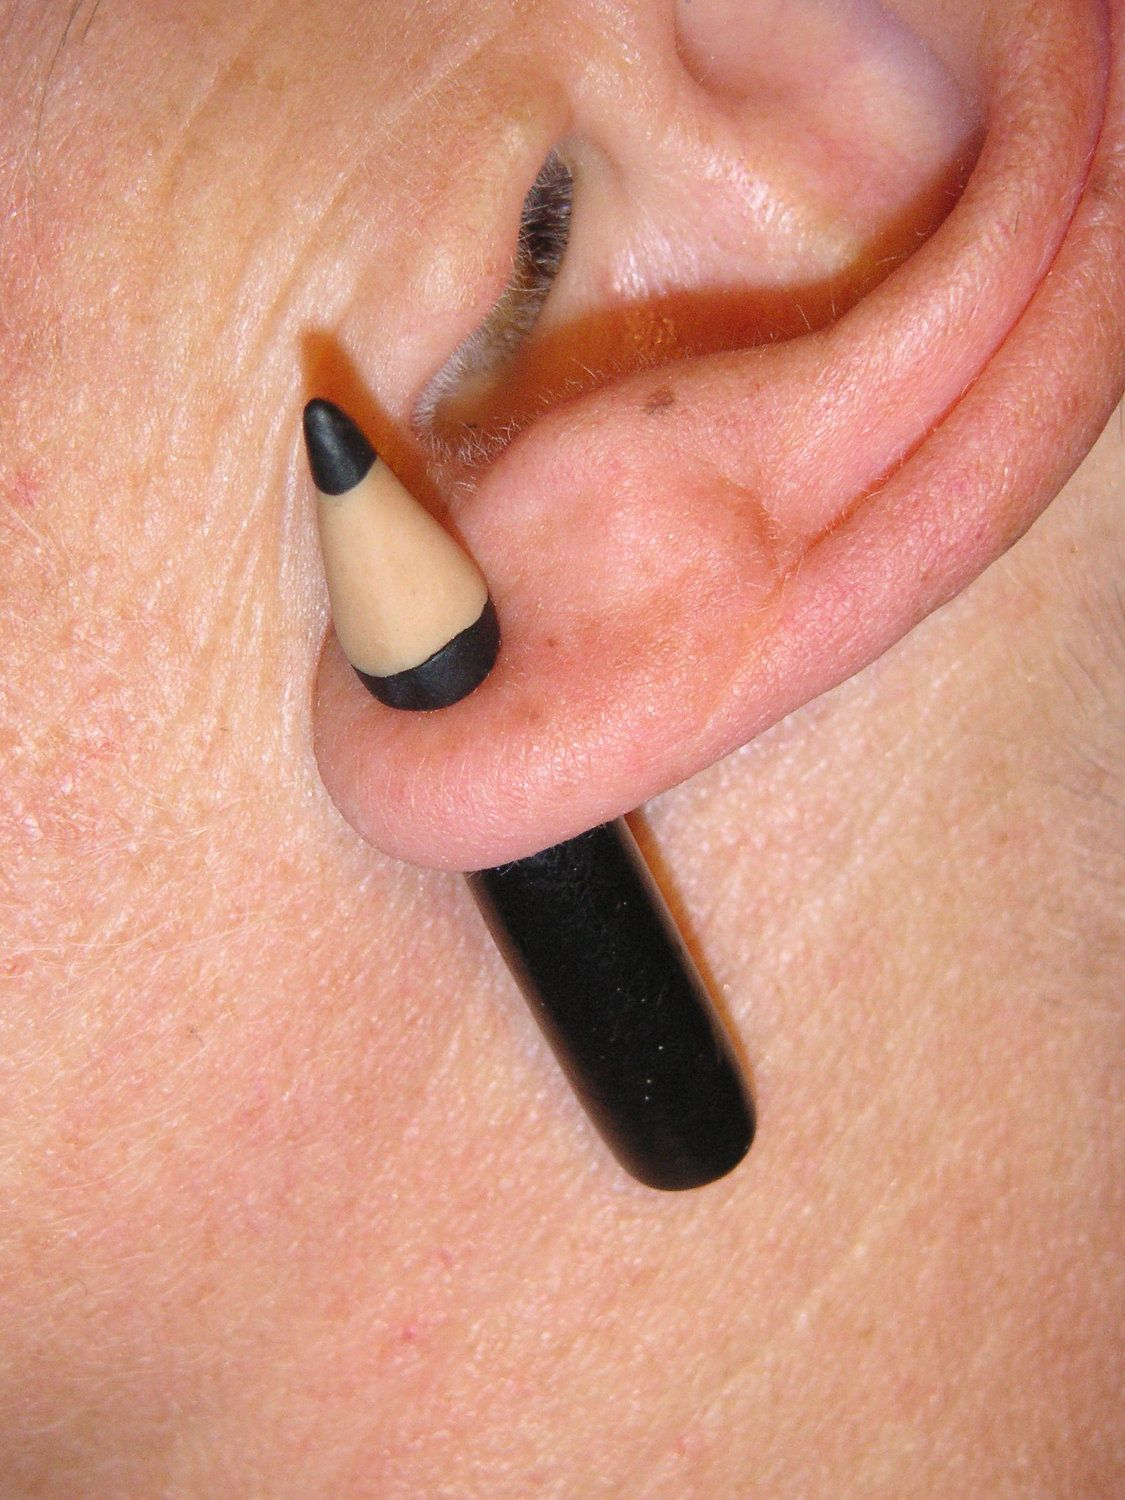 Cow nose piercing  Pair of fake gauge pencil earrings polymer clay pencils through the